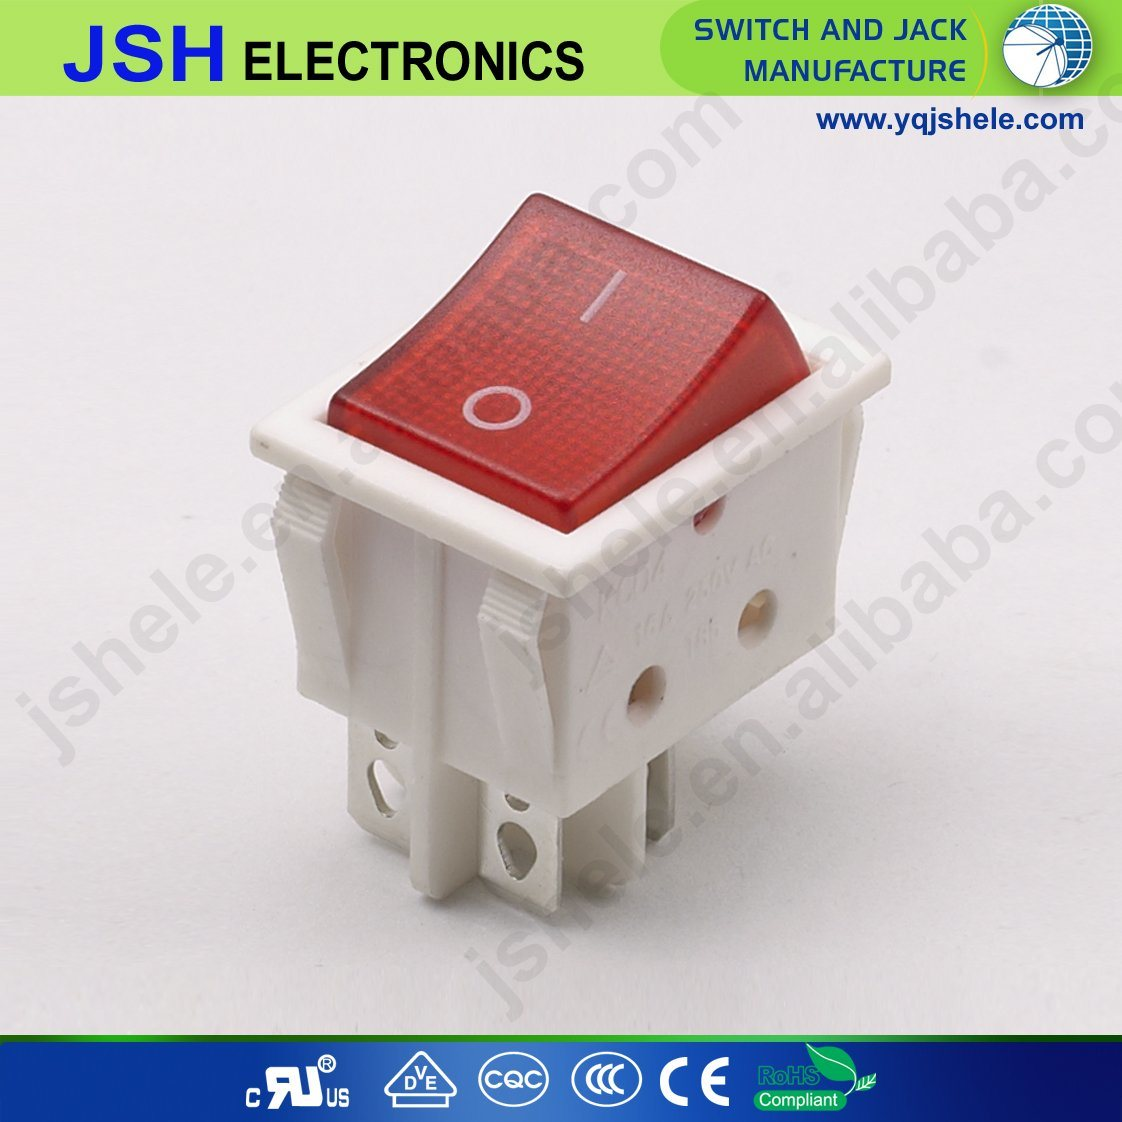 China Electrical Power Rocker Switch With 220v Light Photos For Wiring Toggle Diagrams Kcd1 5